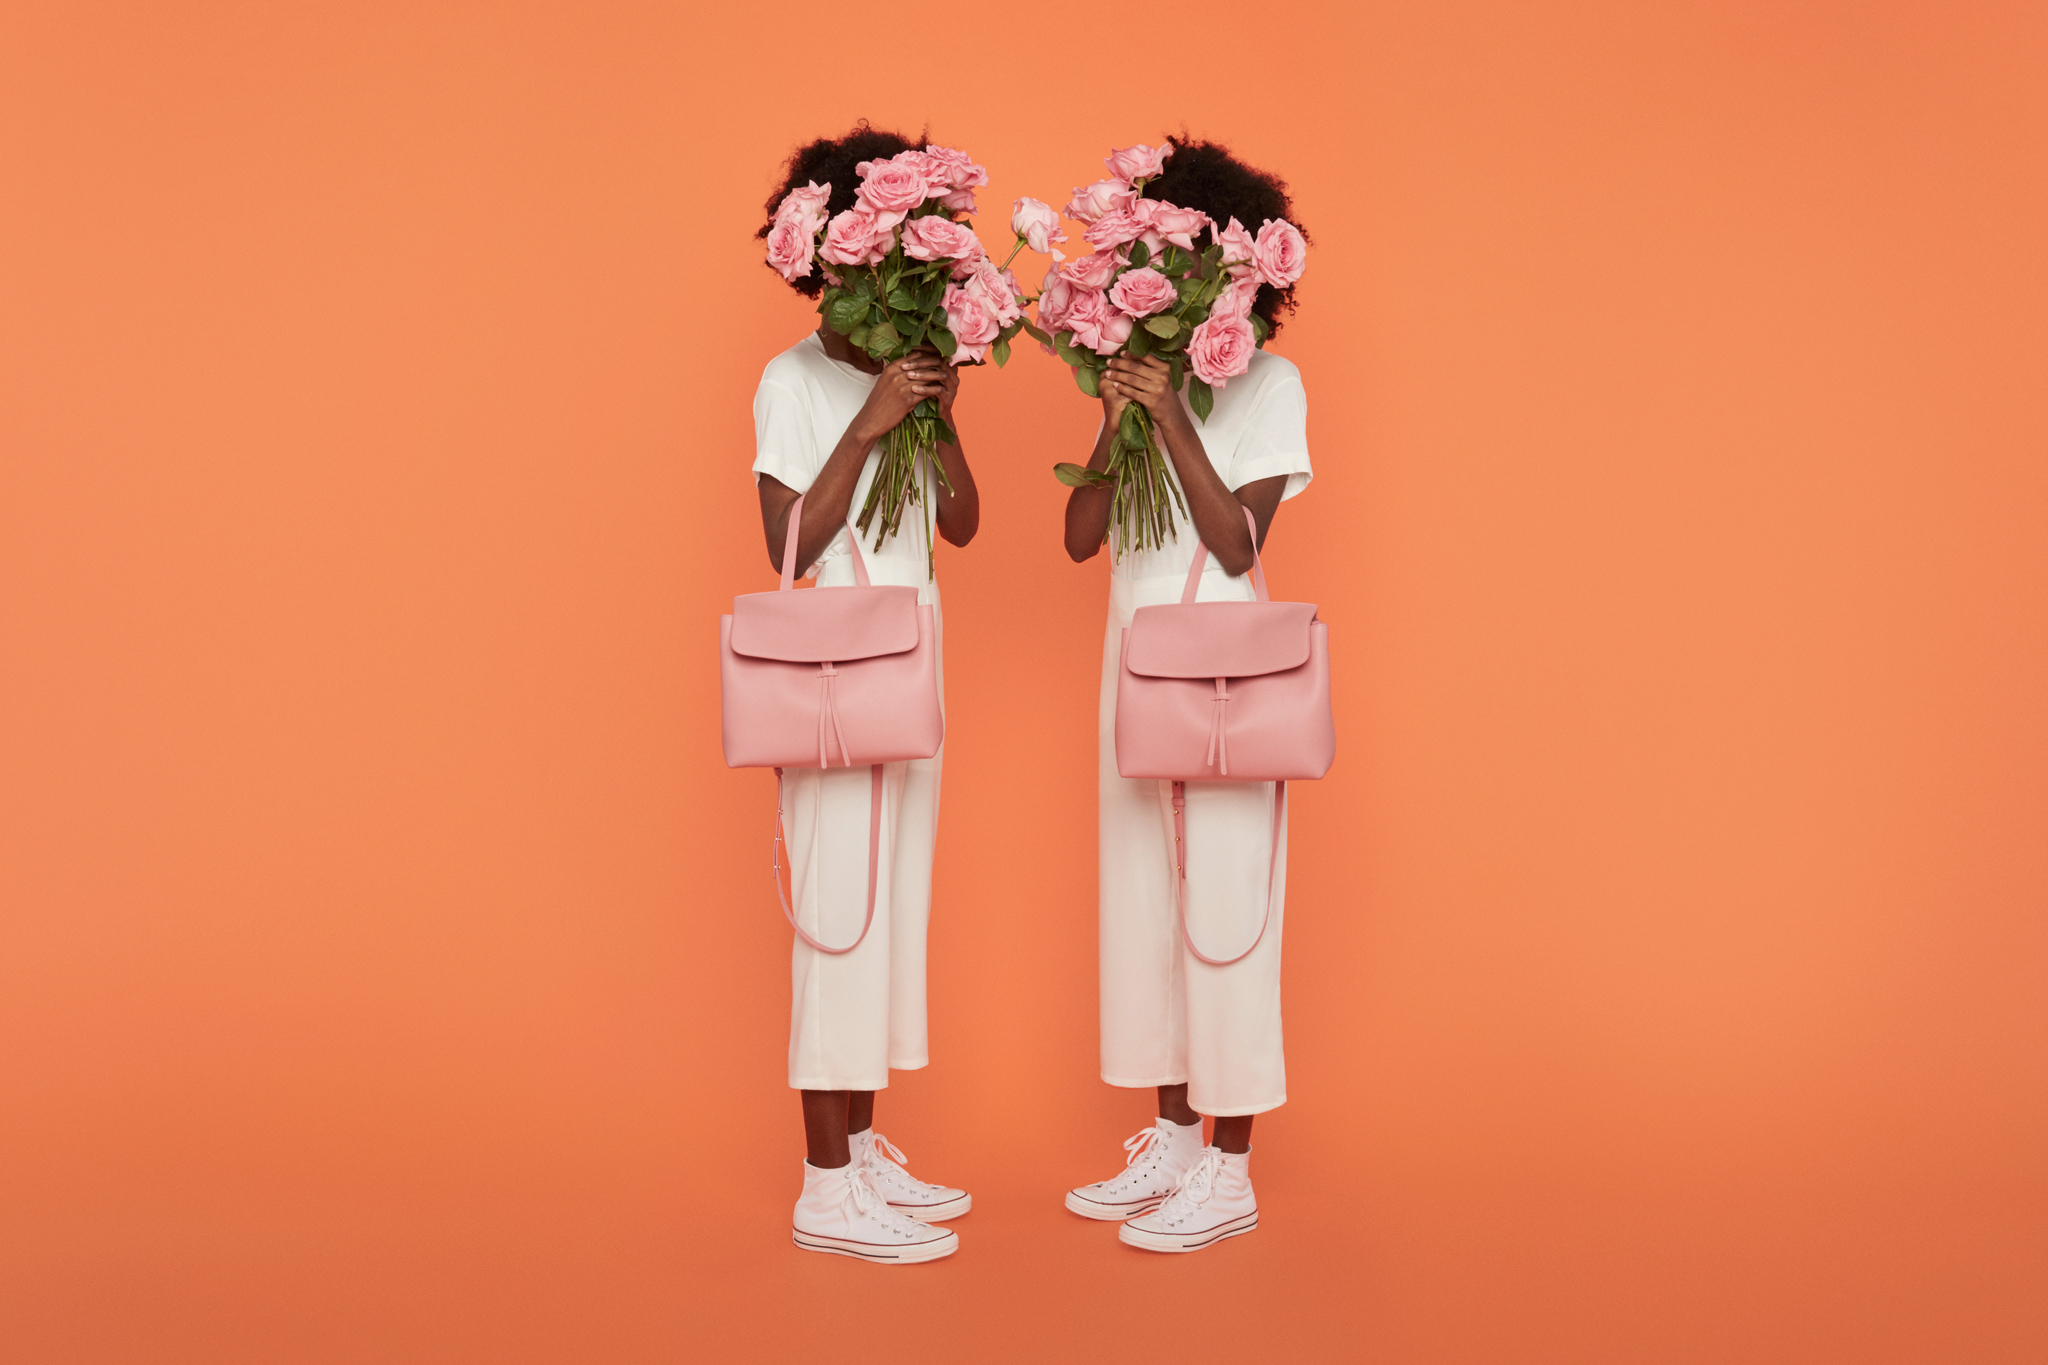 The perfect pink bag from Mansur Gavriel